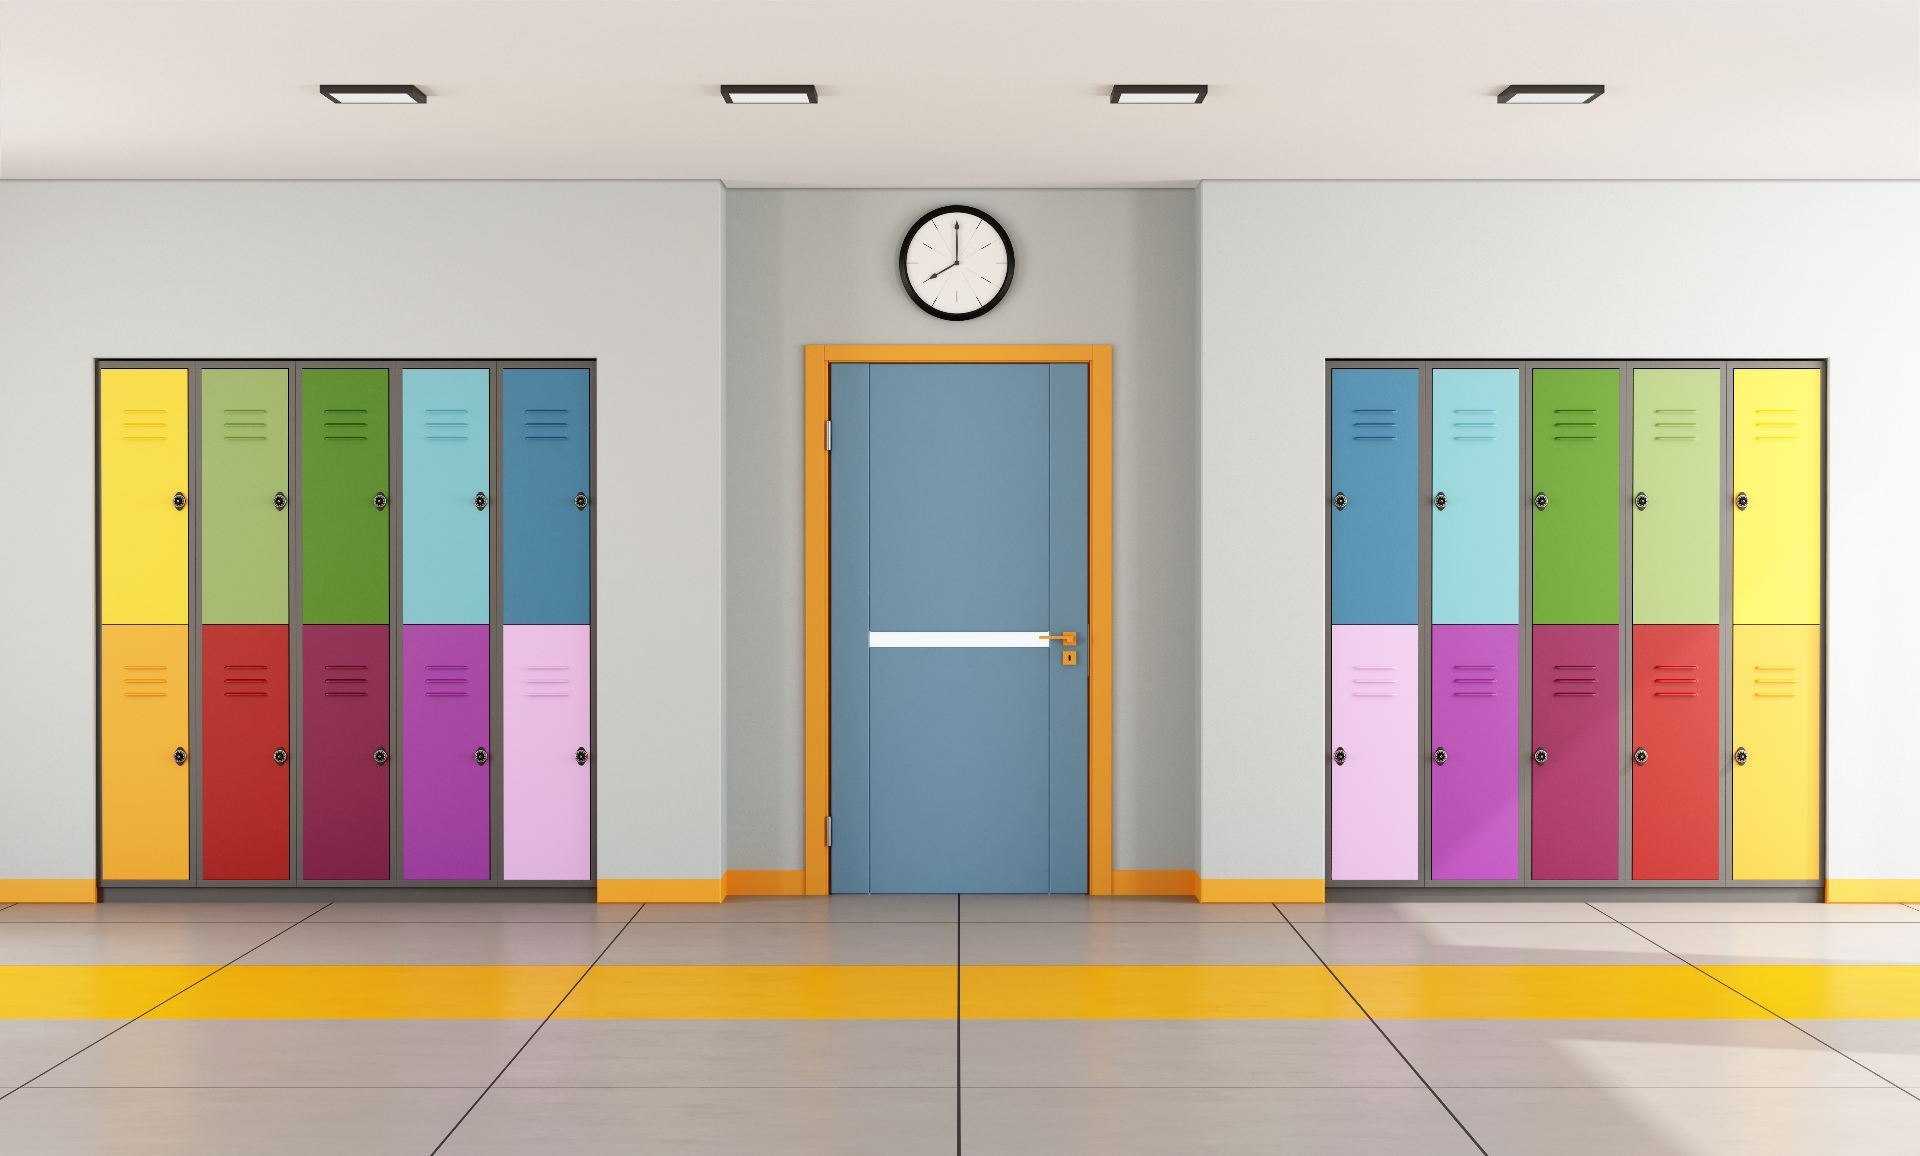 Colorful lockers in a school corridor either side of a door